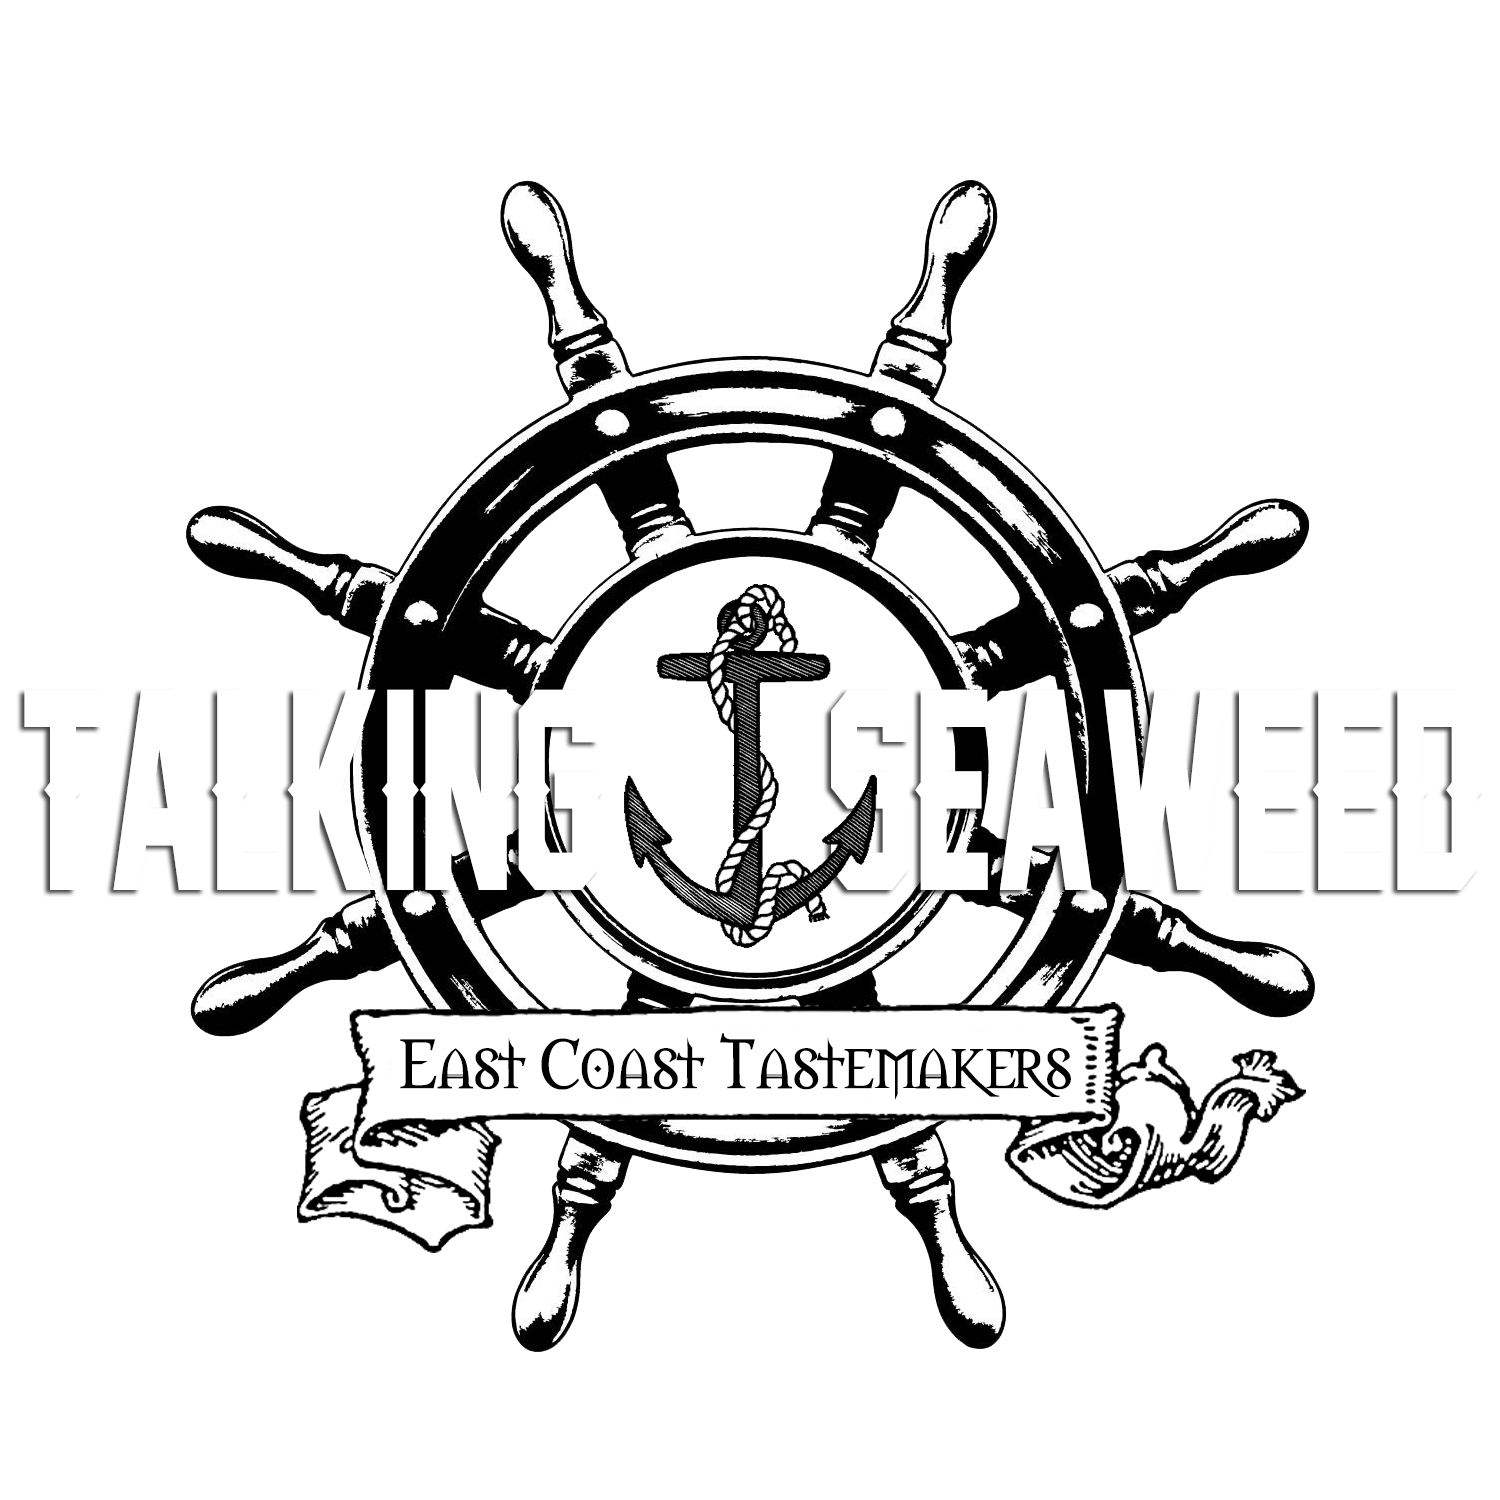 Click here… - For more about Talking Seaweed.